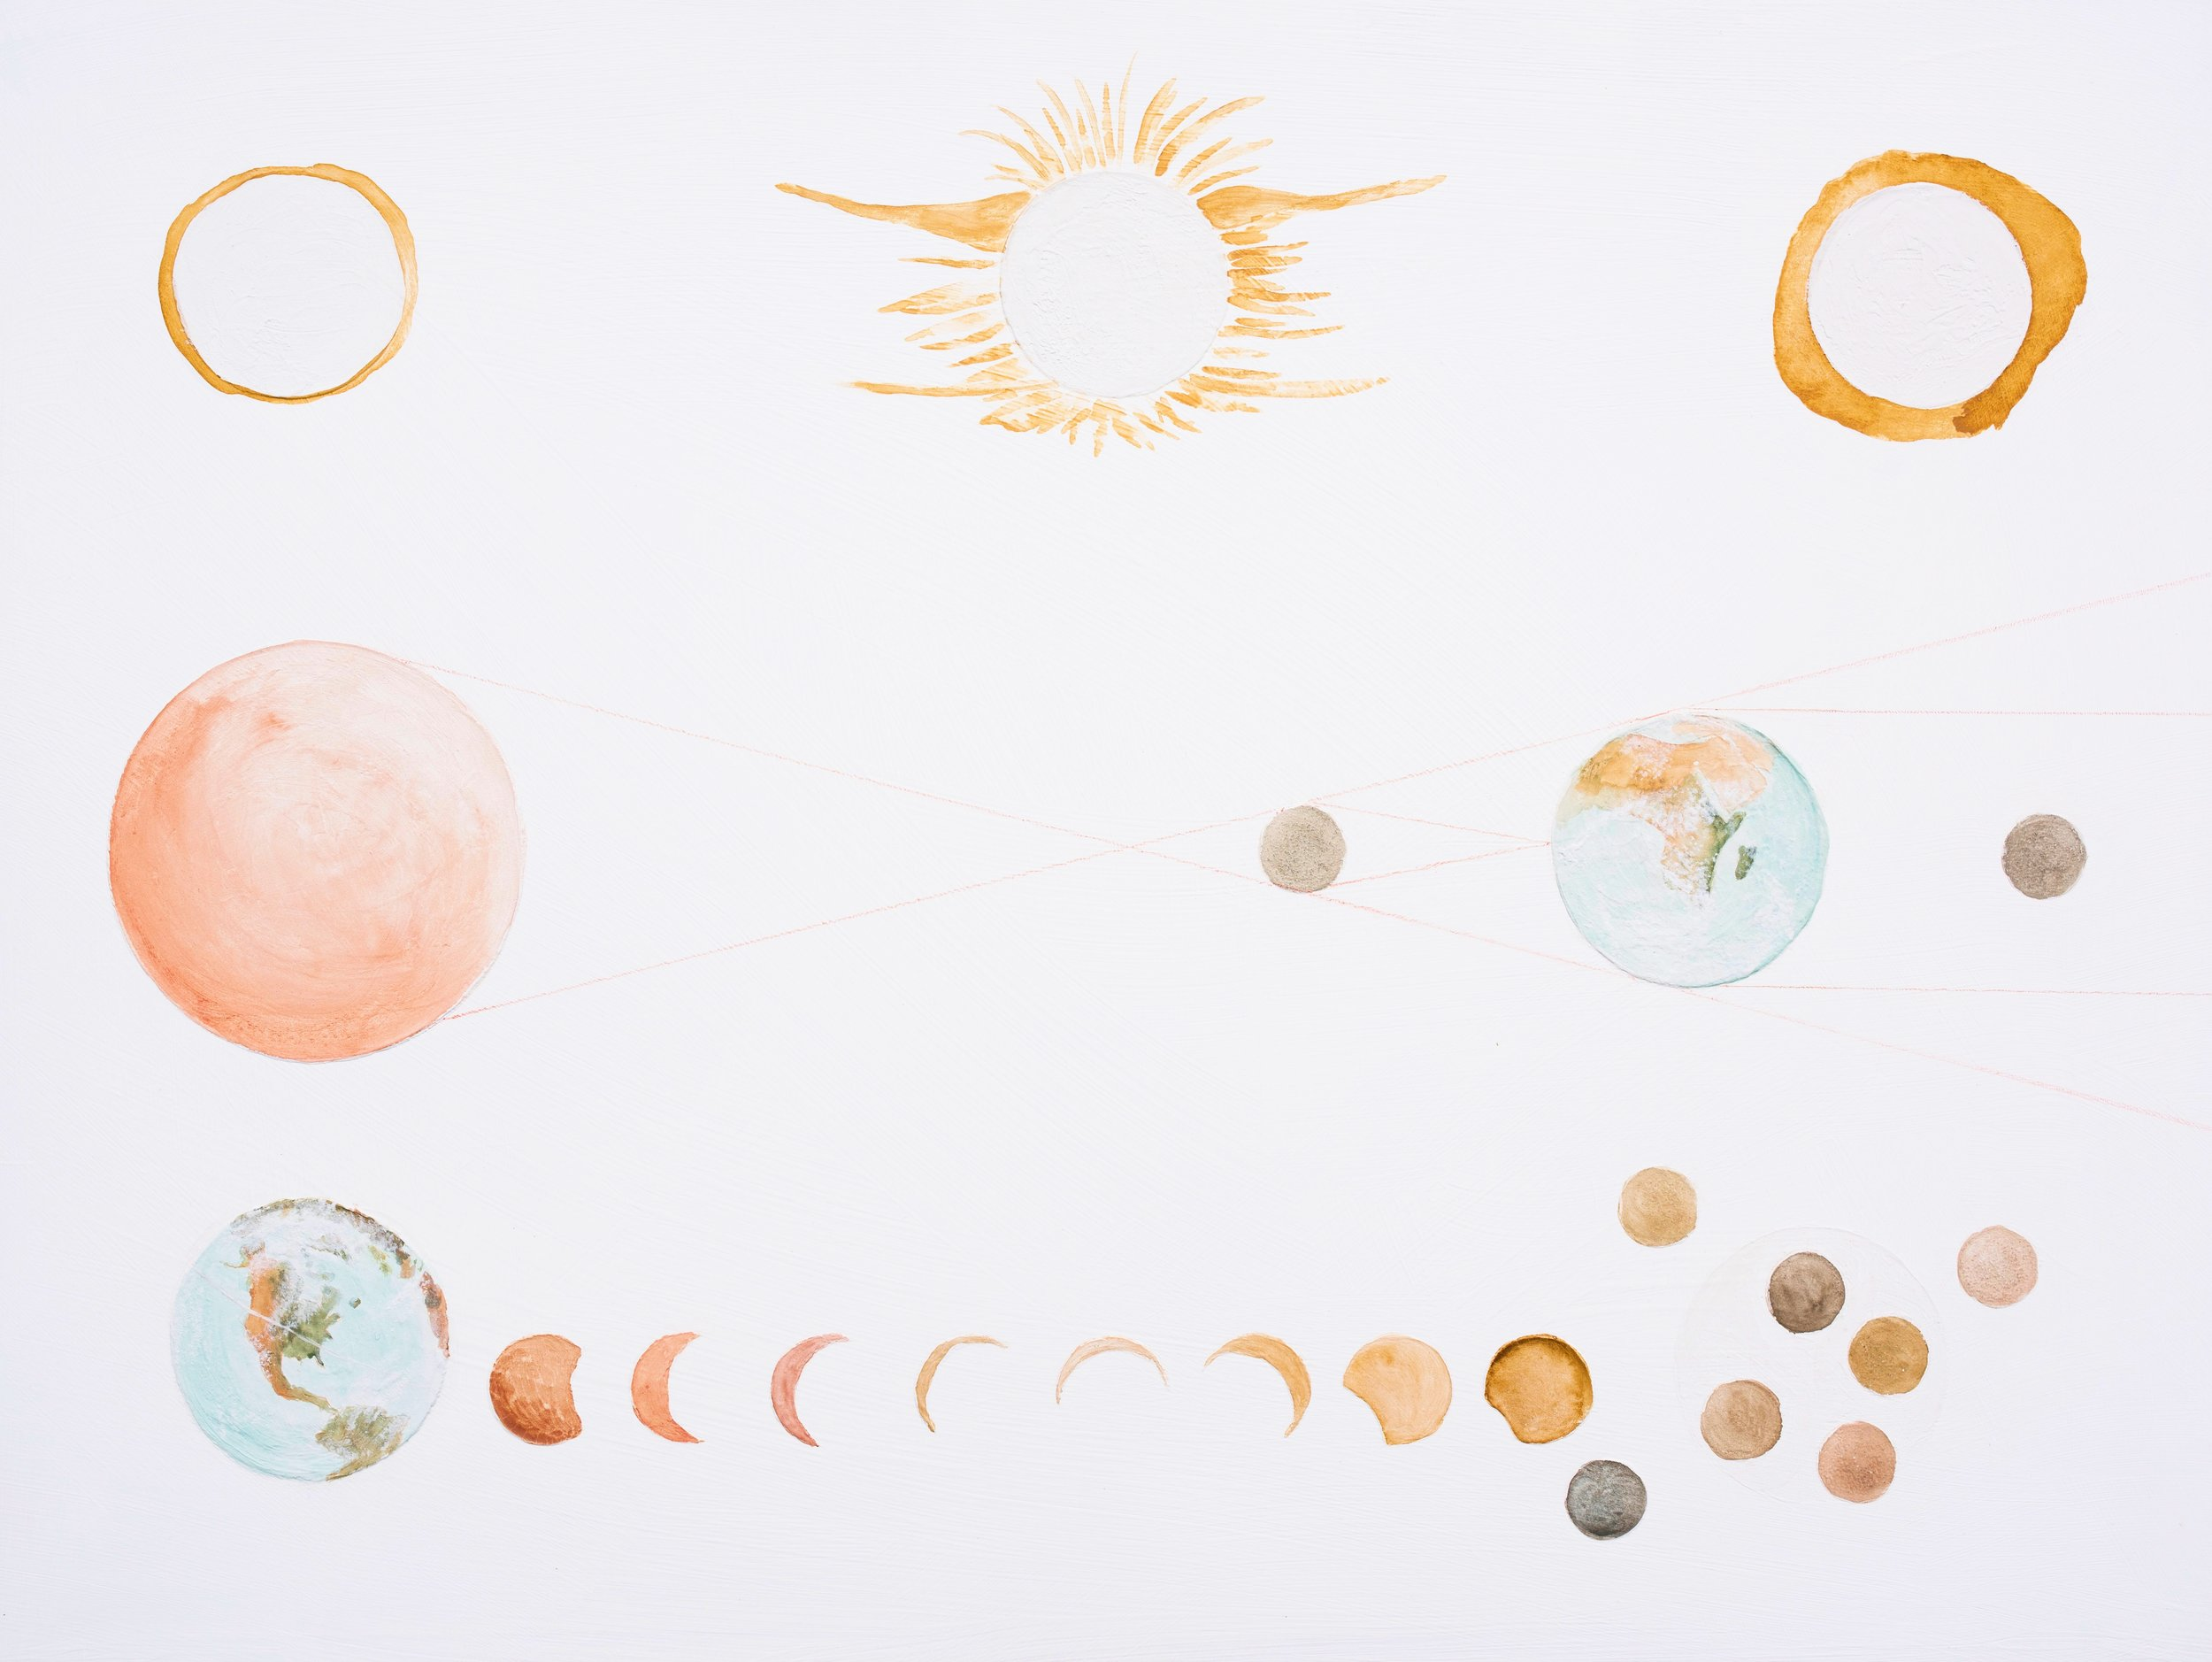 Eclipse of the Sun and Moon